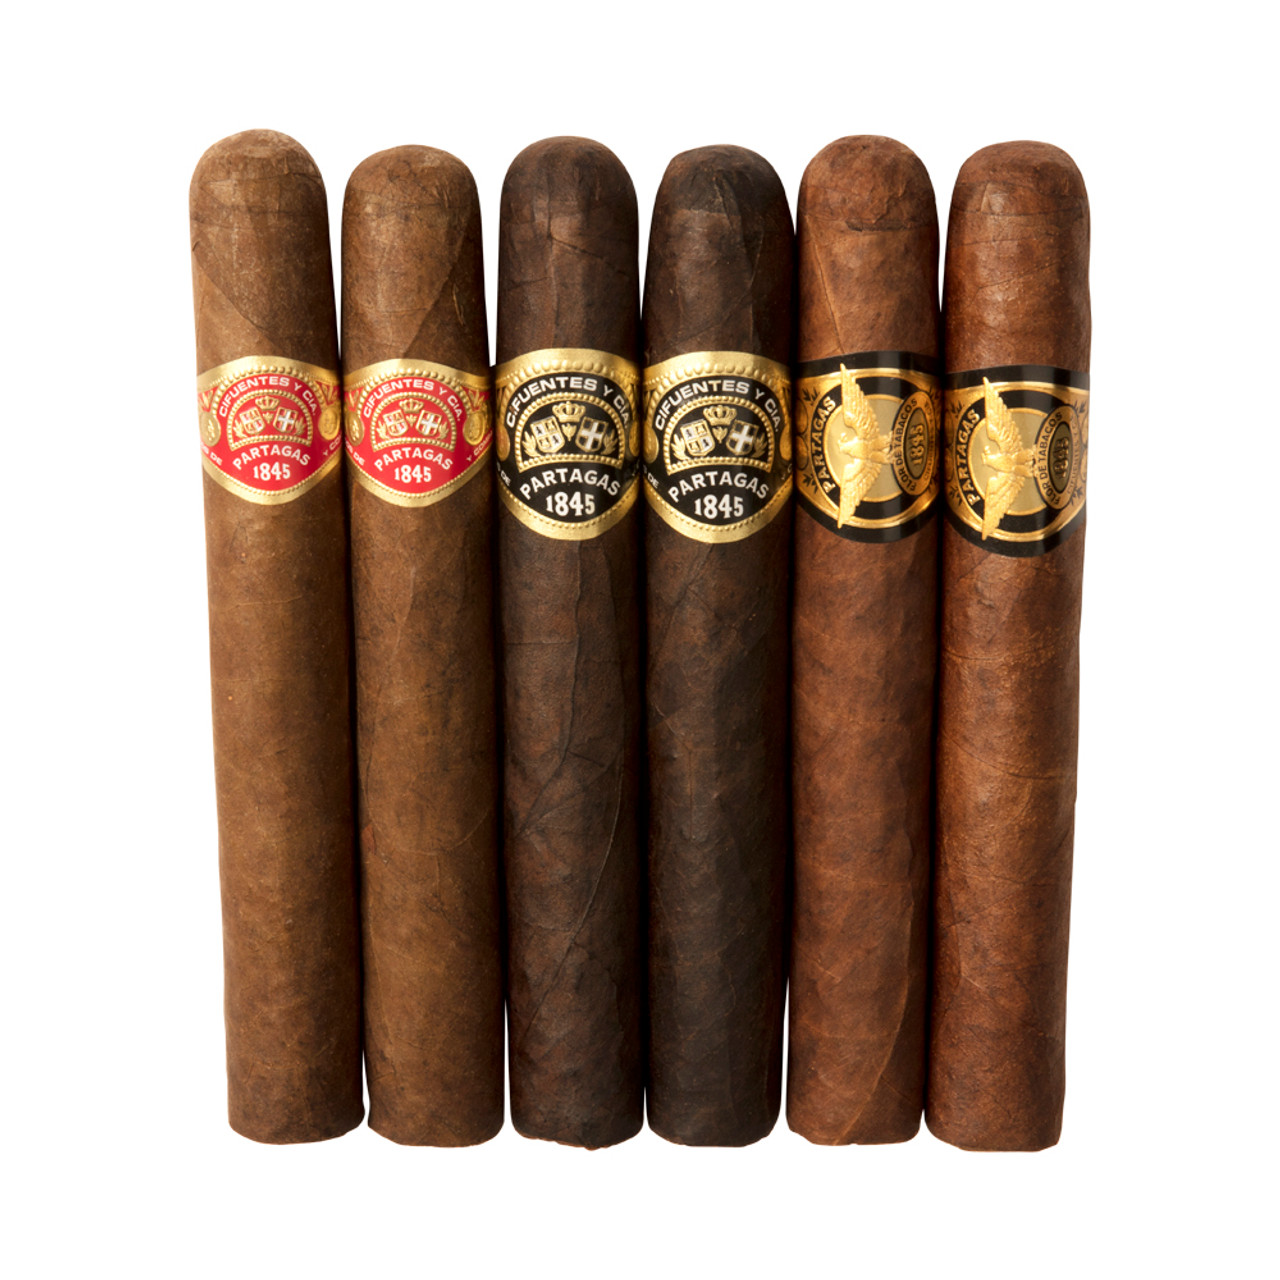 Partagas Collection (Box of 6 Plus a Lighter)